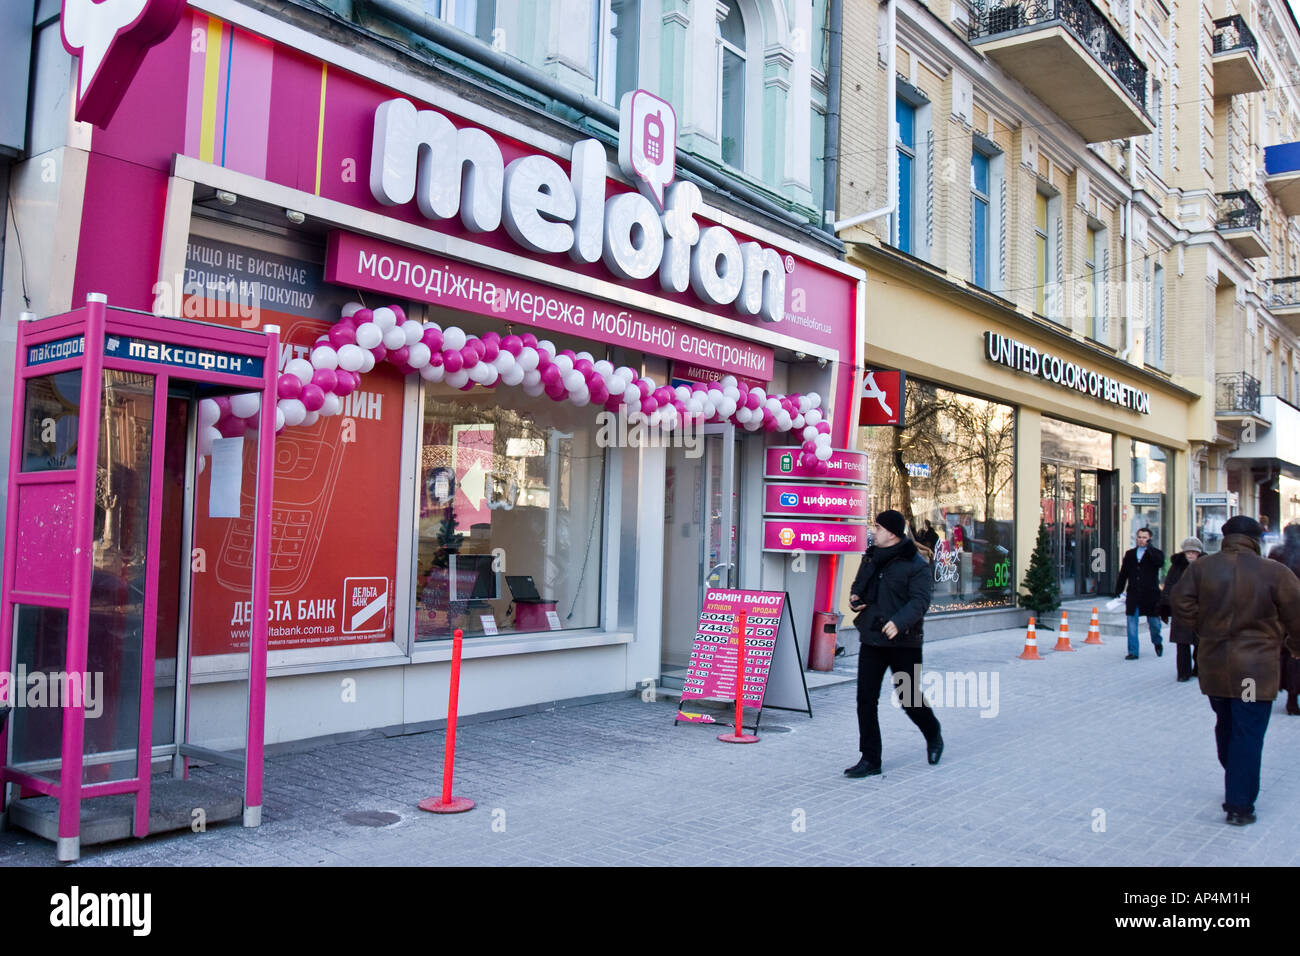 Mobile phone shop MELOFON in Kiew Ukraine - Stock Image